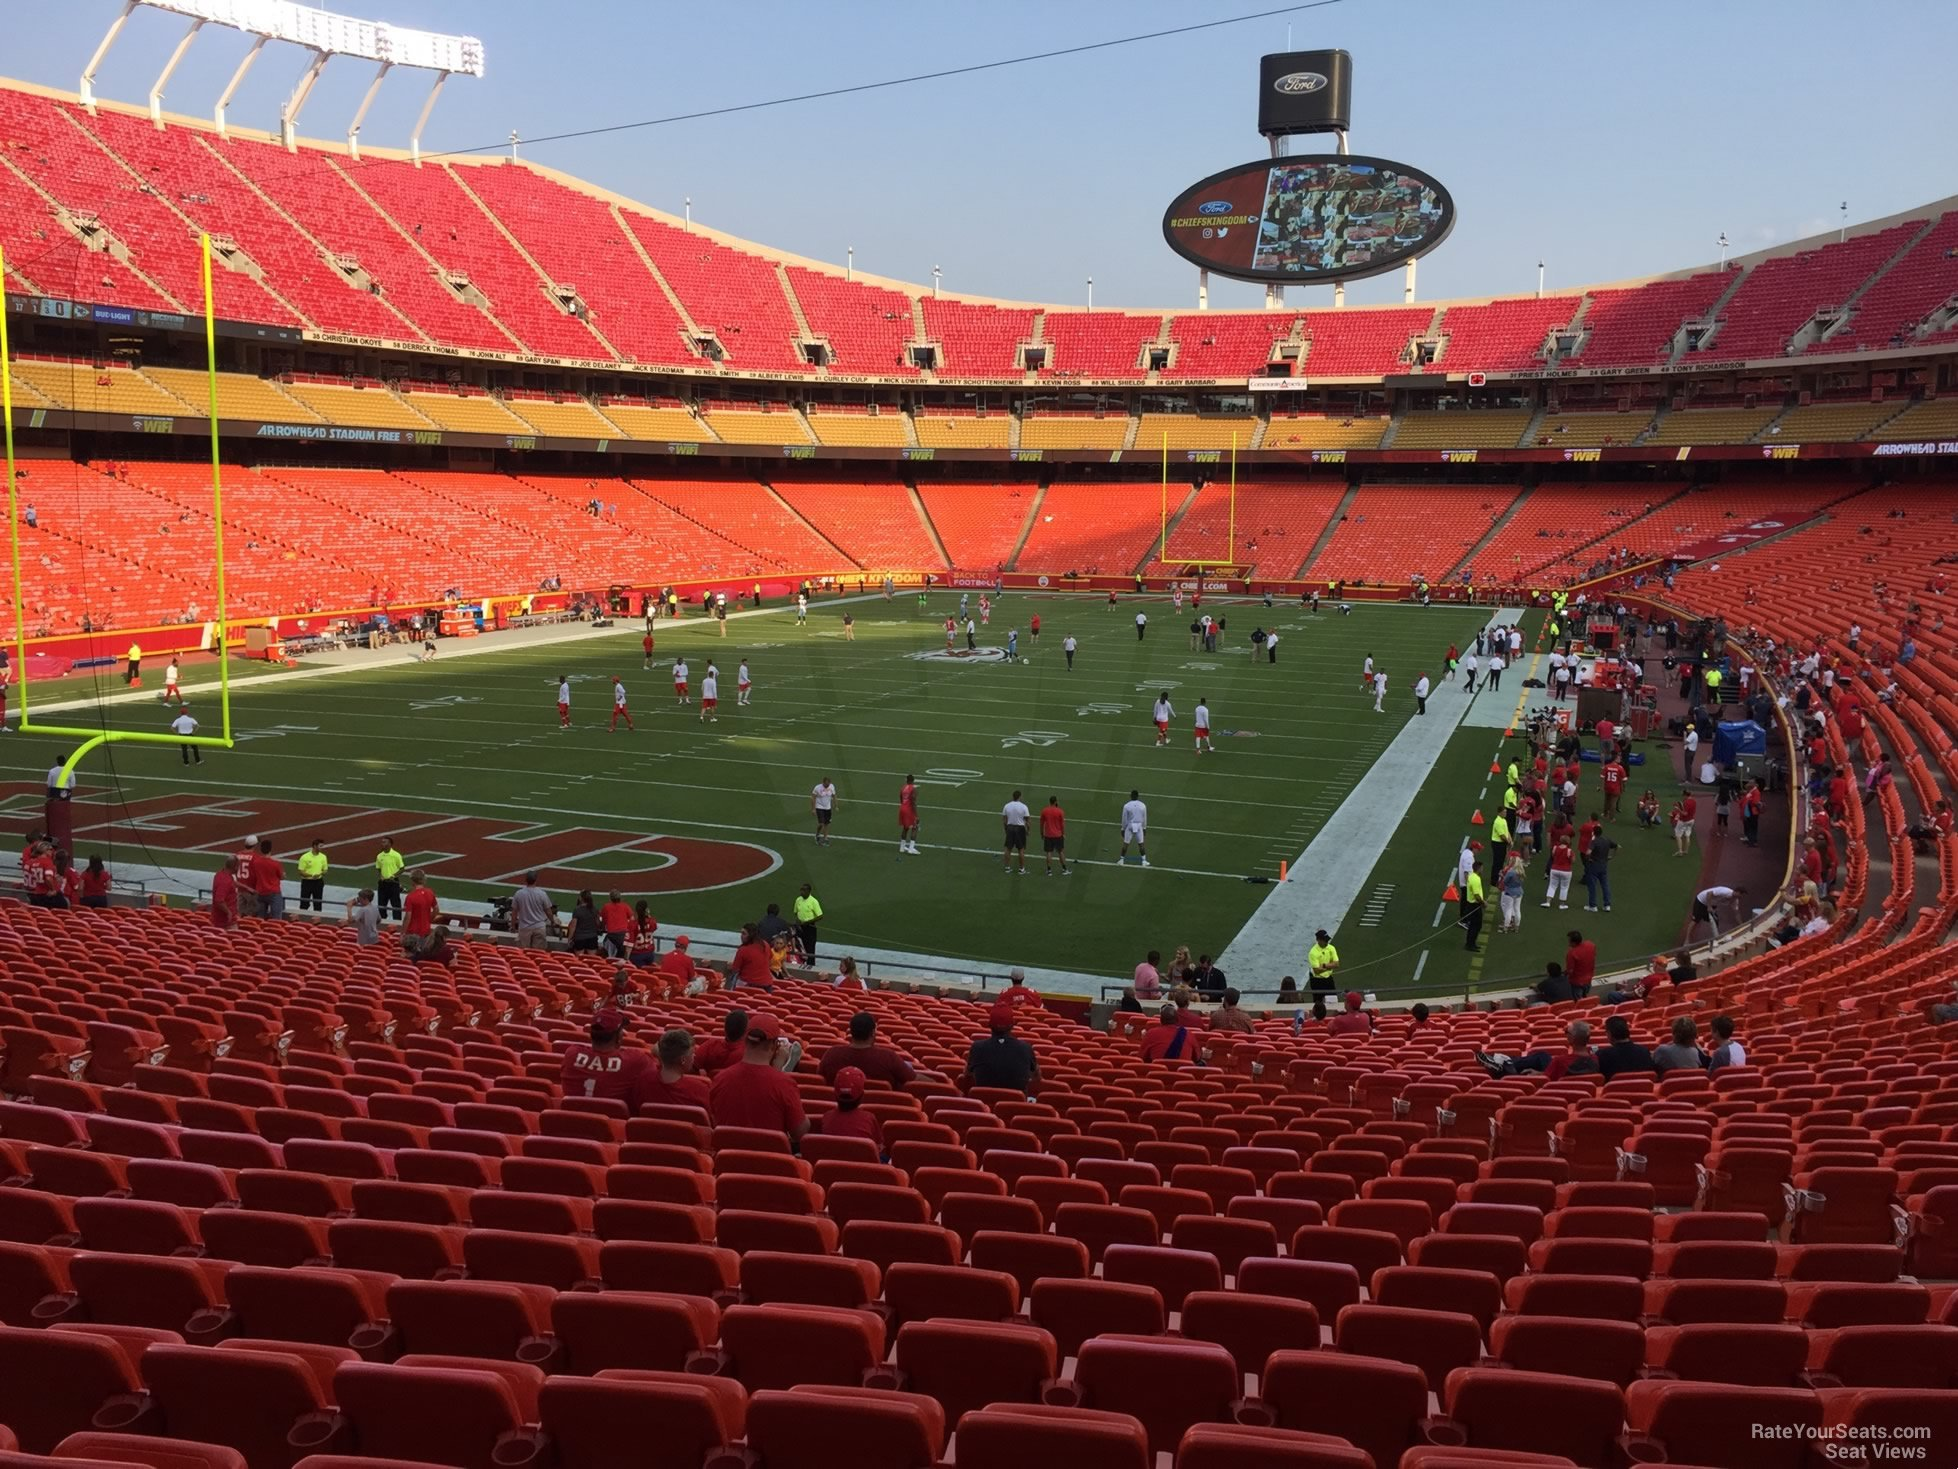 Seat View for Arrowhead Stadium Section 126, Row 30